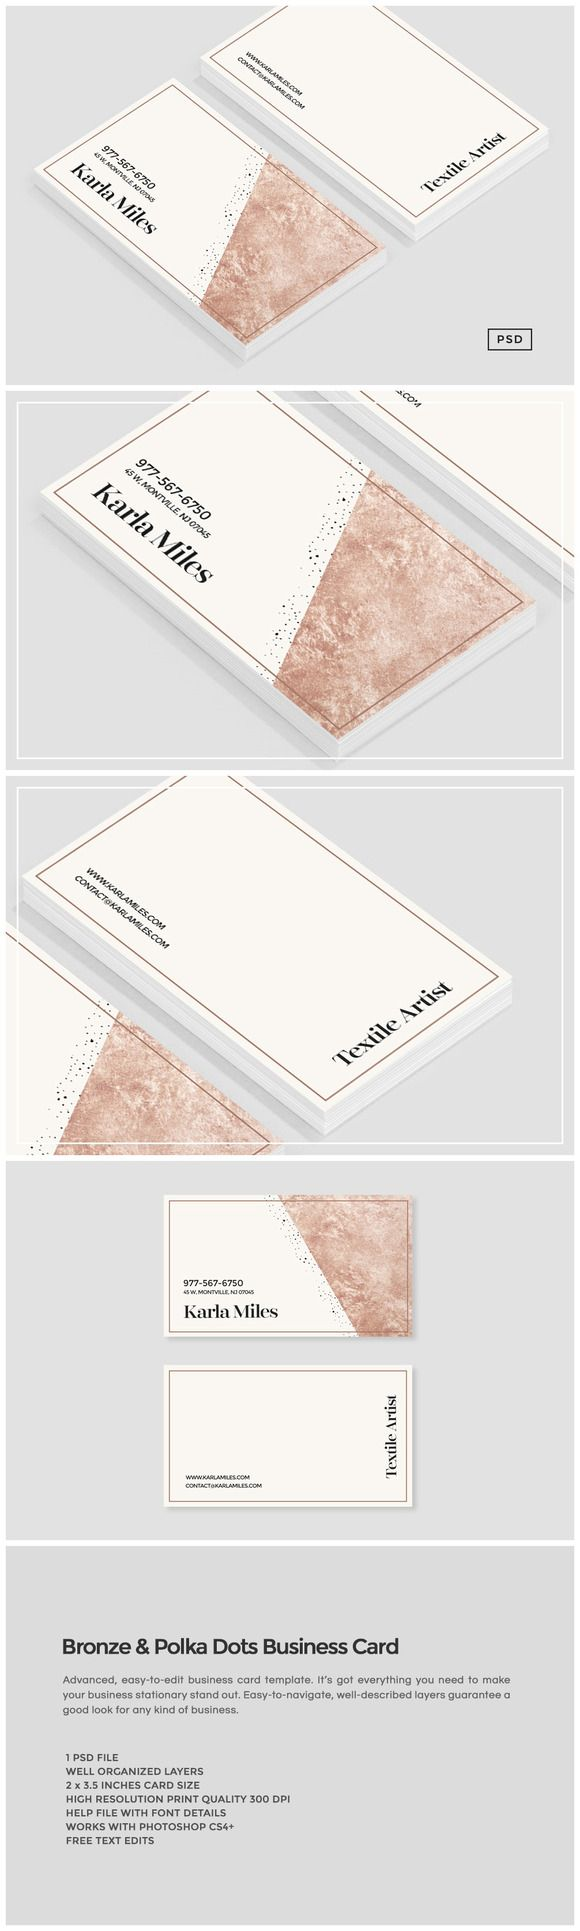 Bronze & Polka Dots Business Card by Design Co. on  @creativemarket #business #cards #card #businesscard #businesscards #print #theme #template #stock #design #download #website #logo